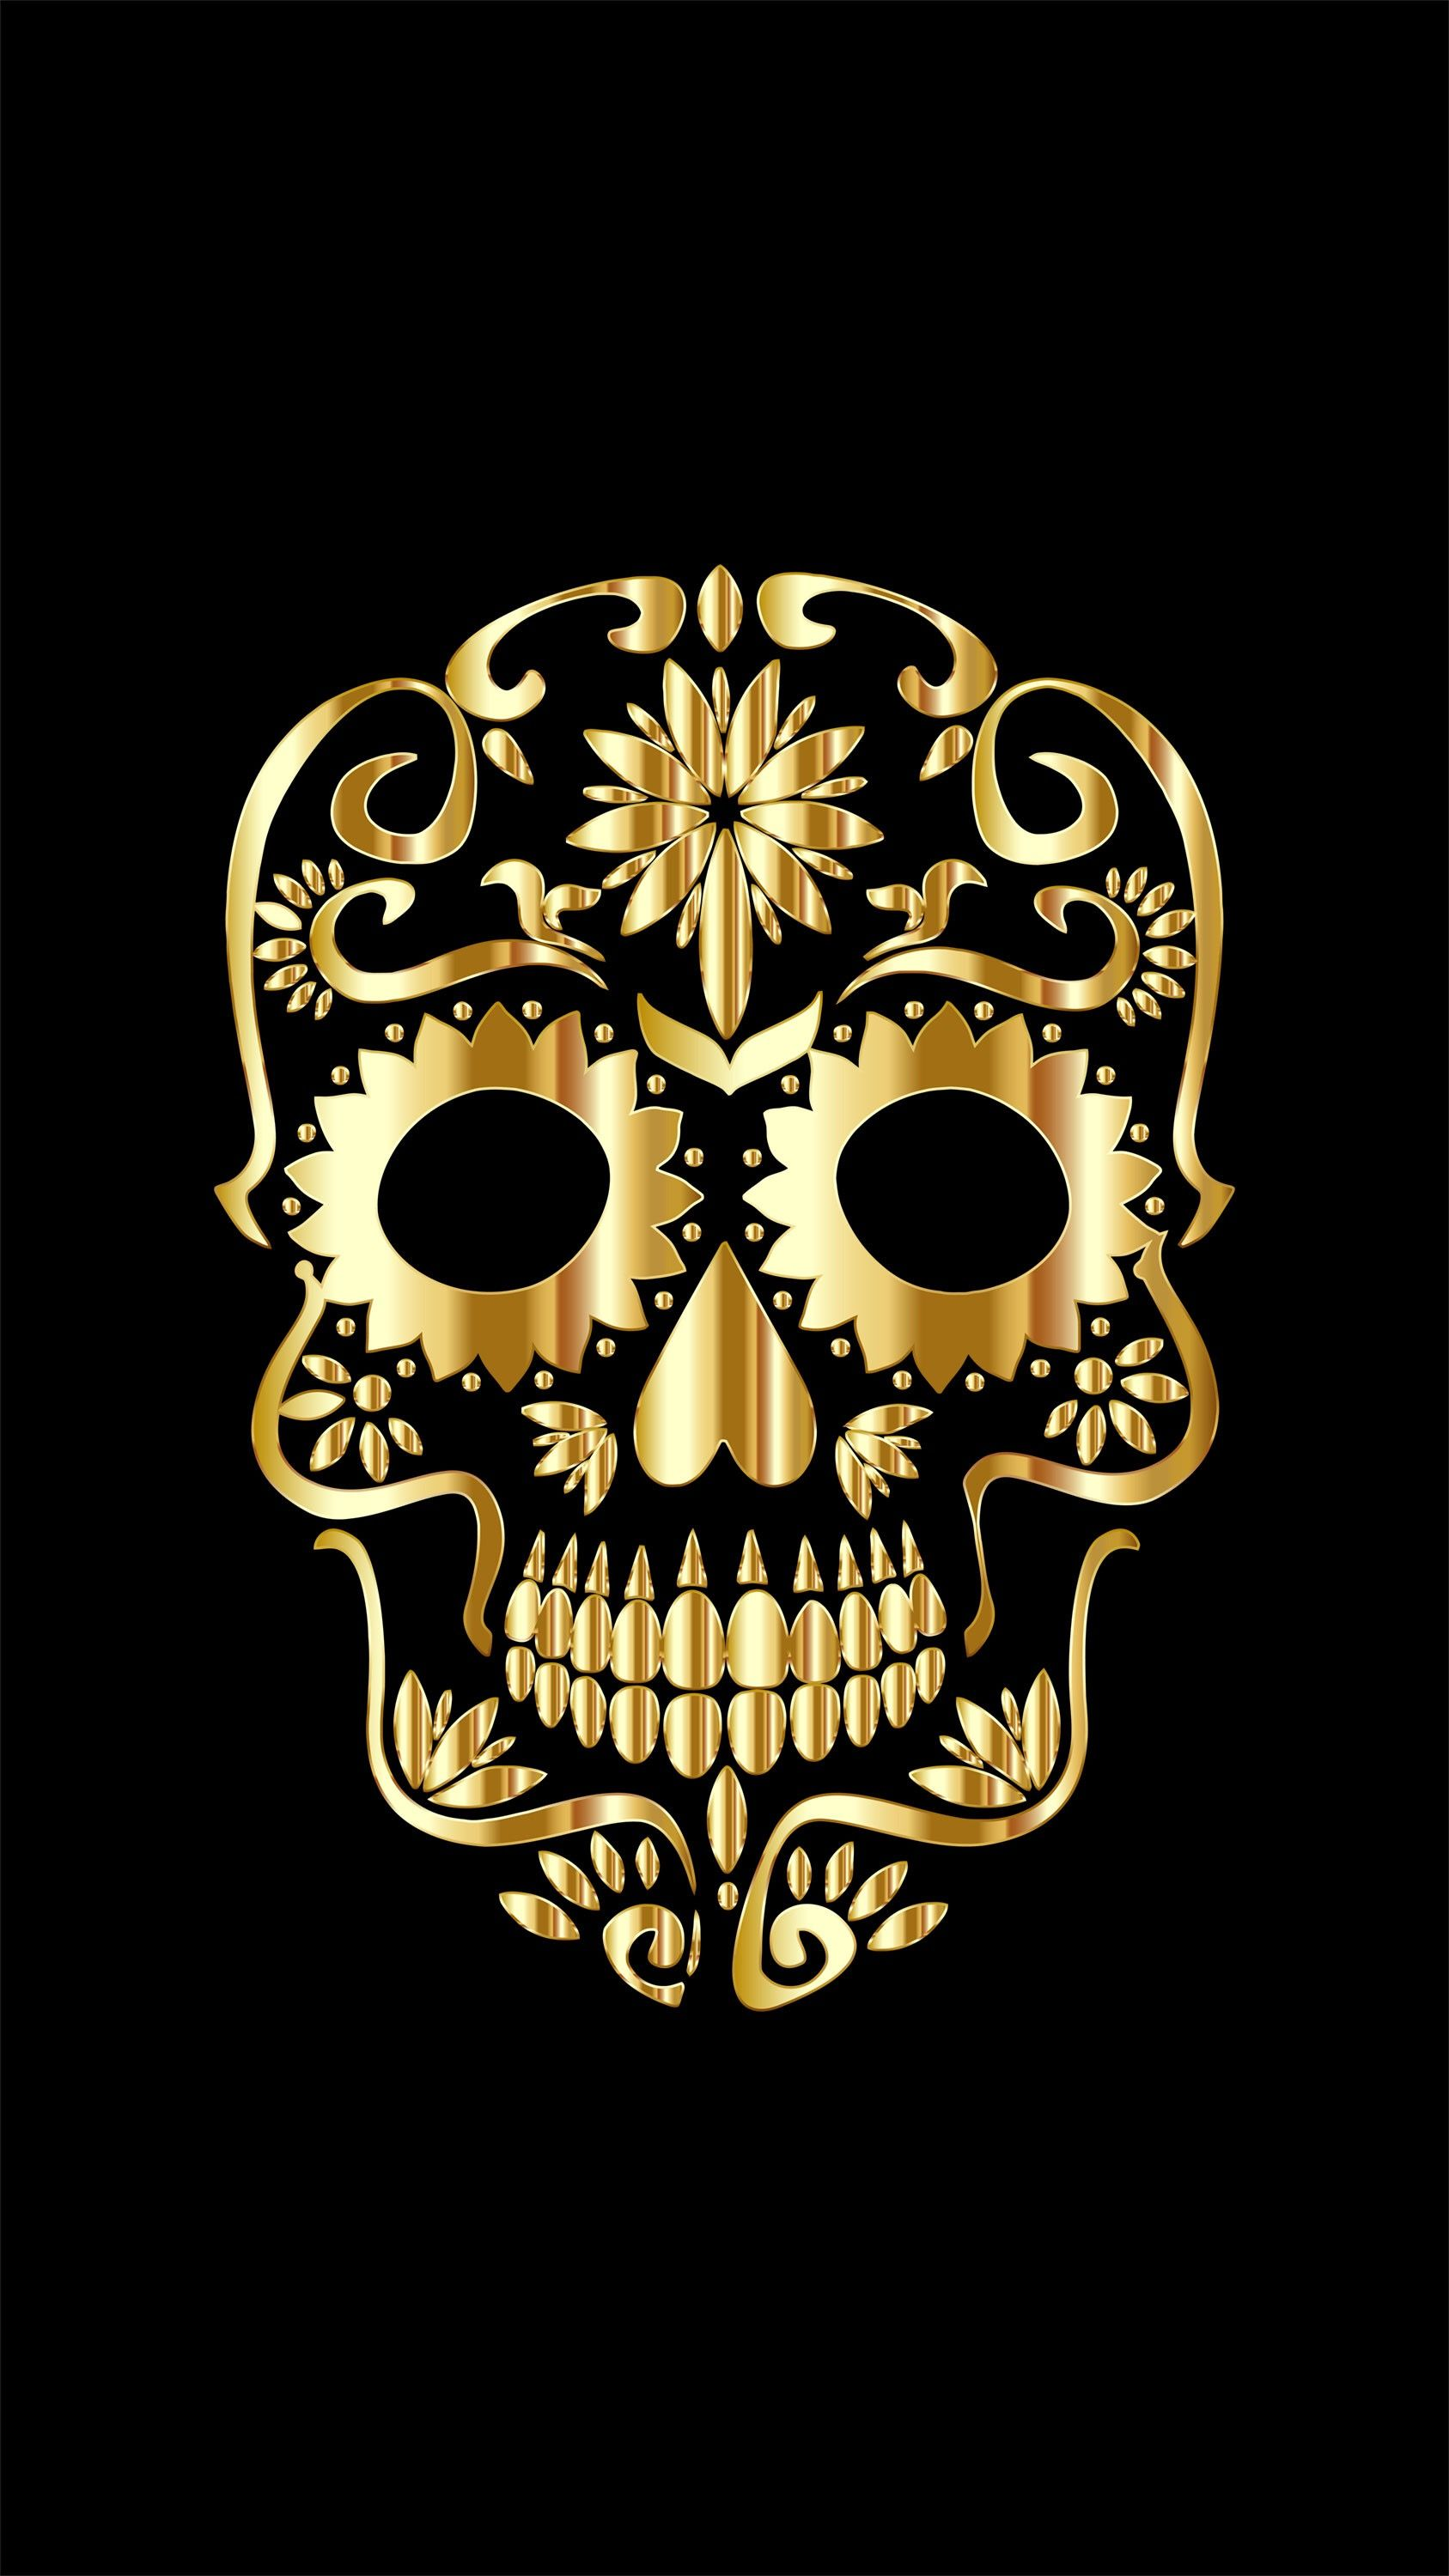 Pin By Camille On Wallpapers Gold Skull Skull Gold